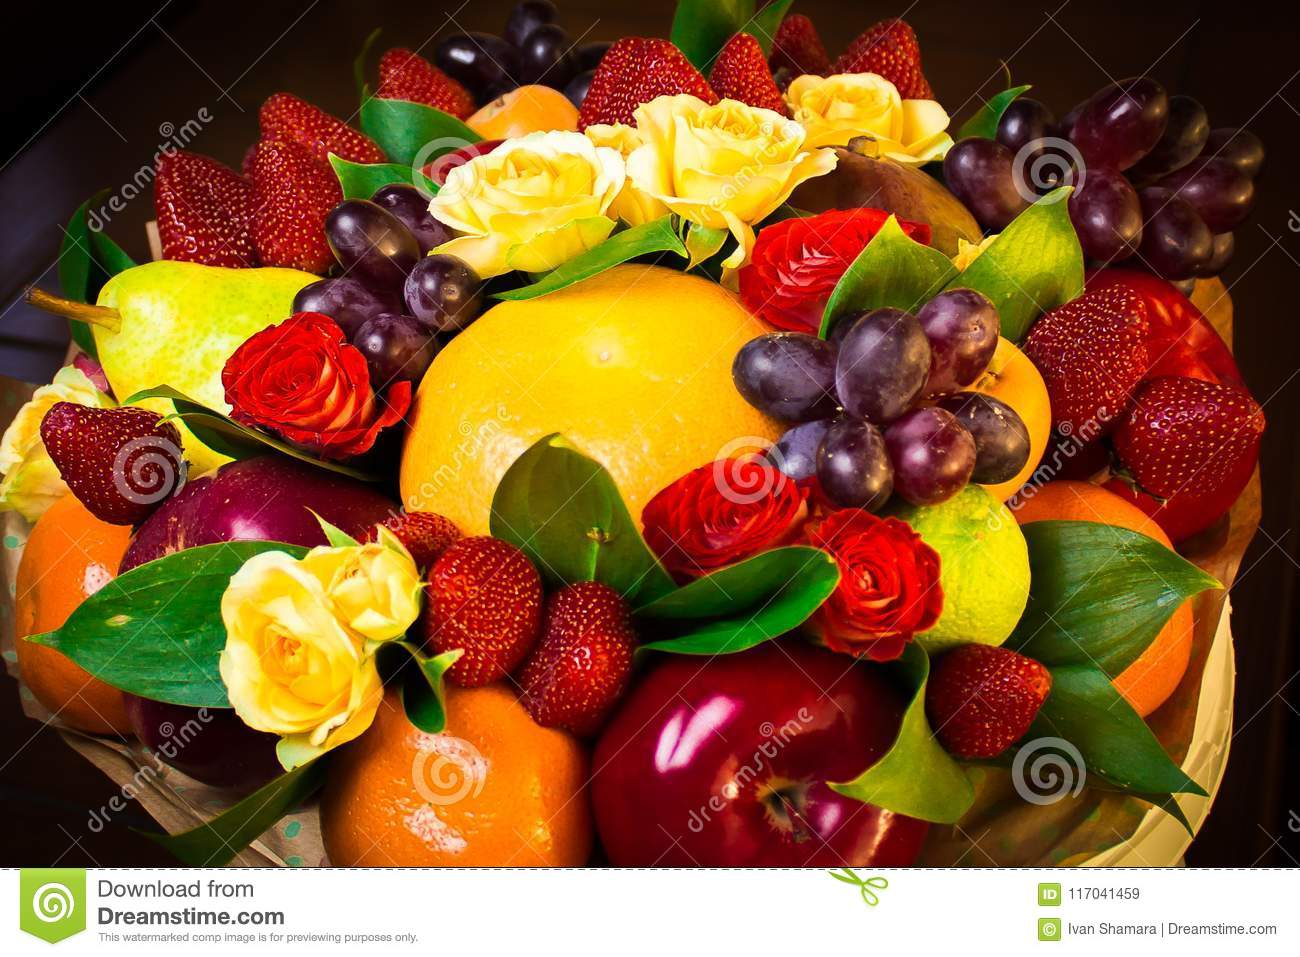 Bouquet with real flowers and fruits stock image image of apple bouquet with real flowers and fruits bucut with flowers and fruits is a very unique gift for the holiday izmirmasajfo